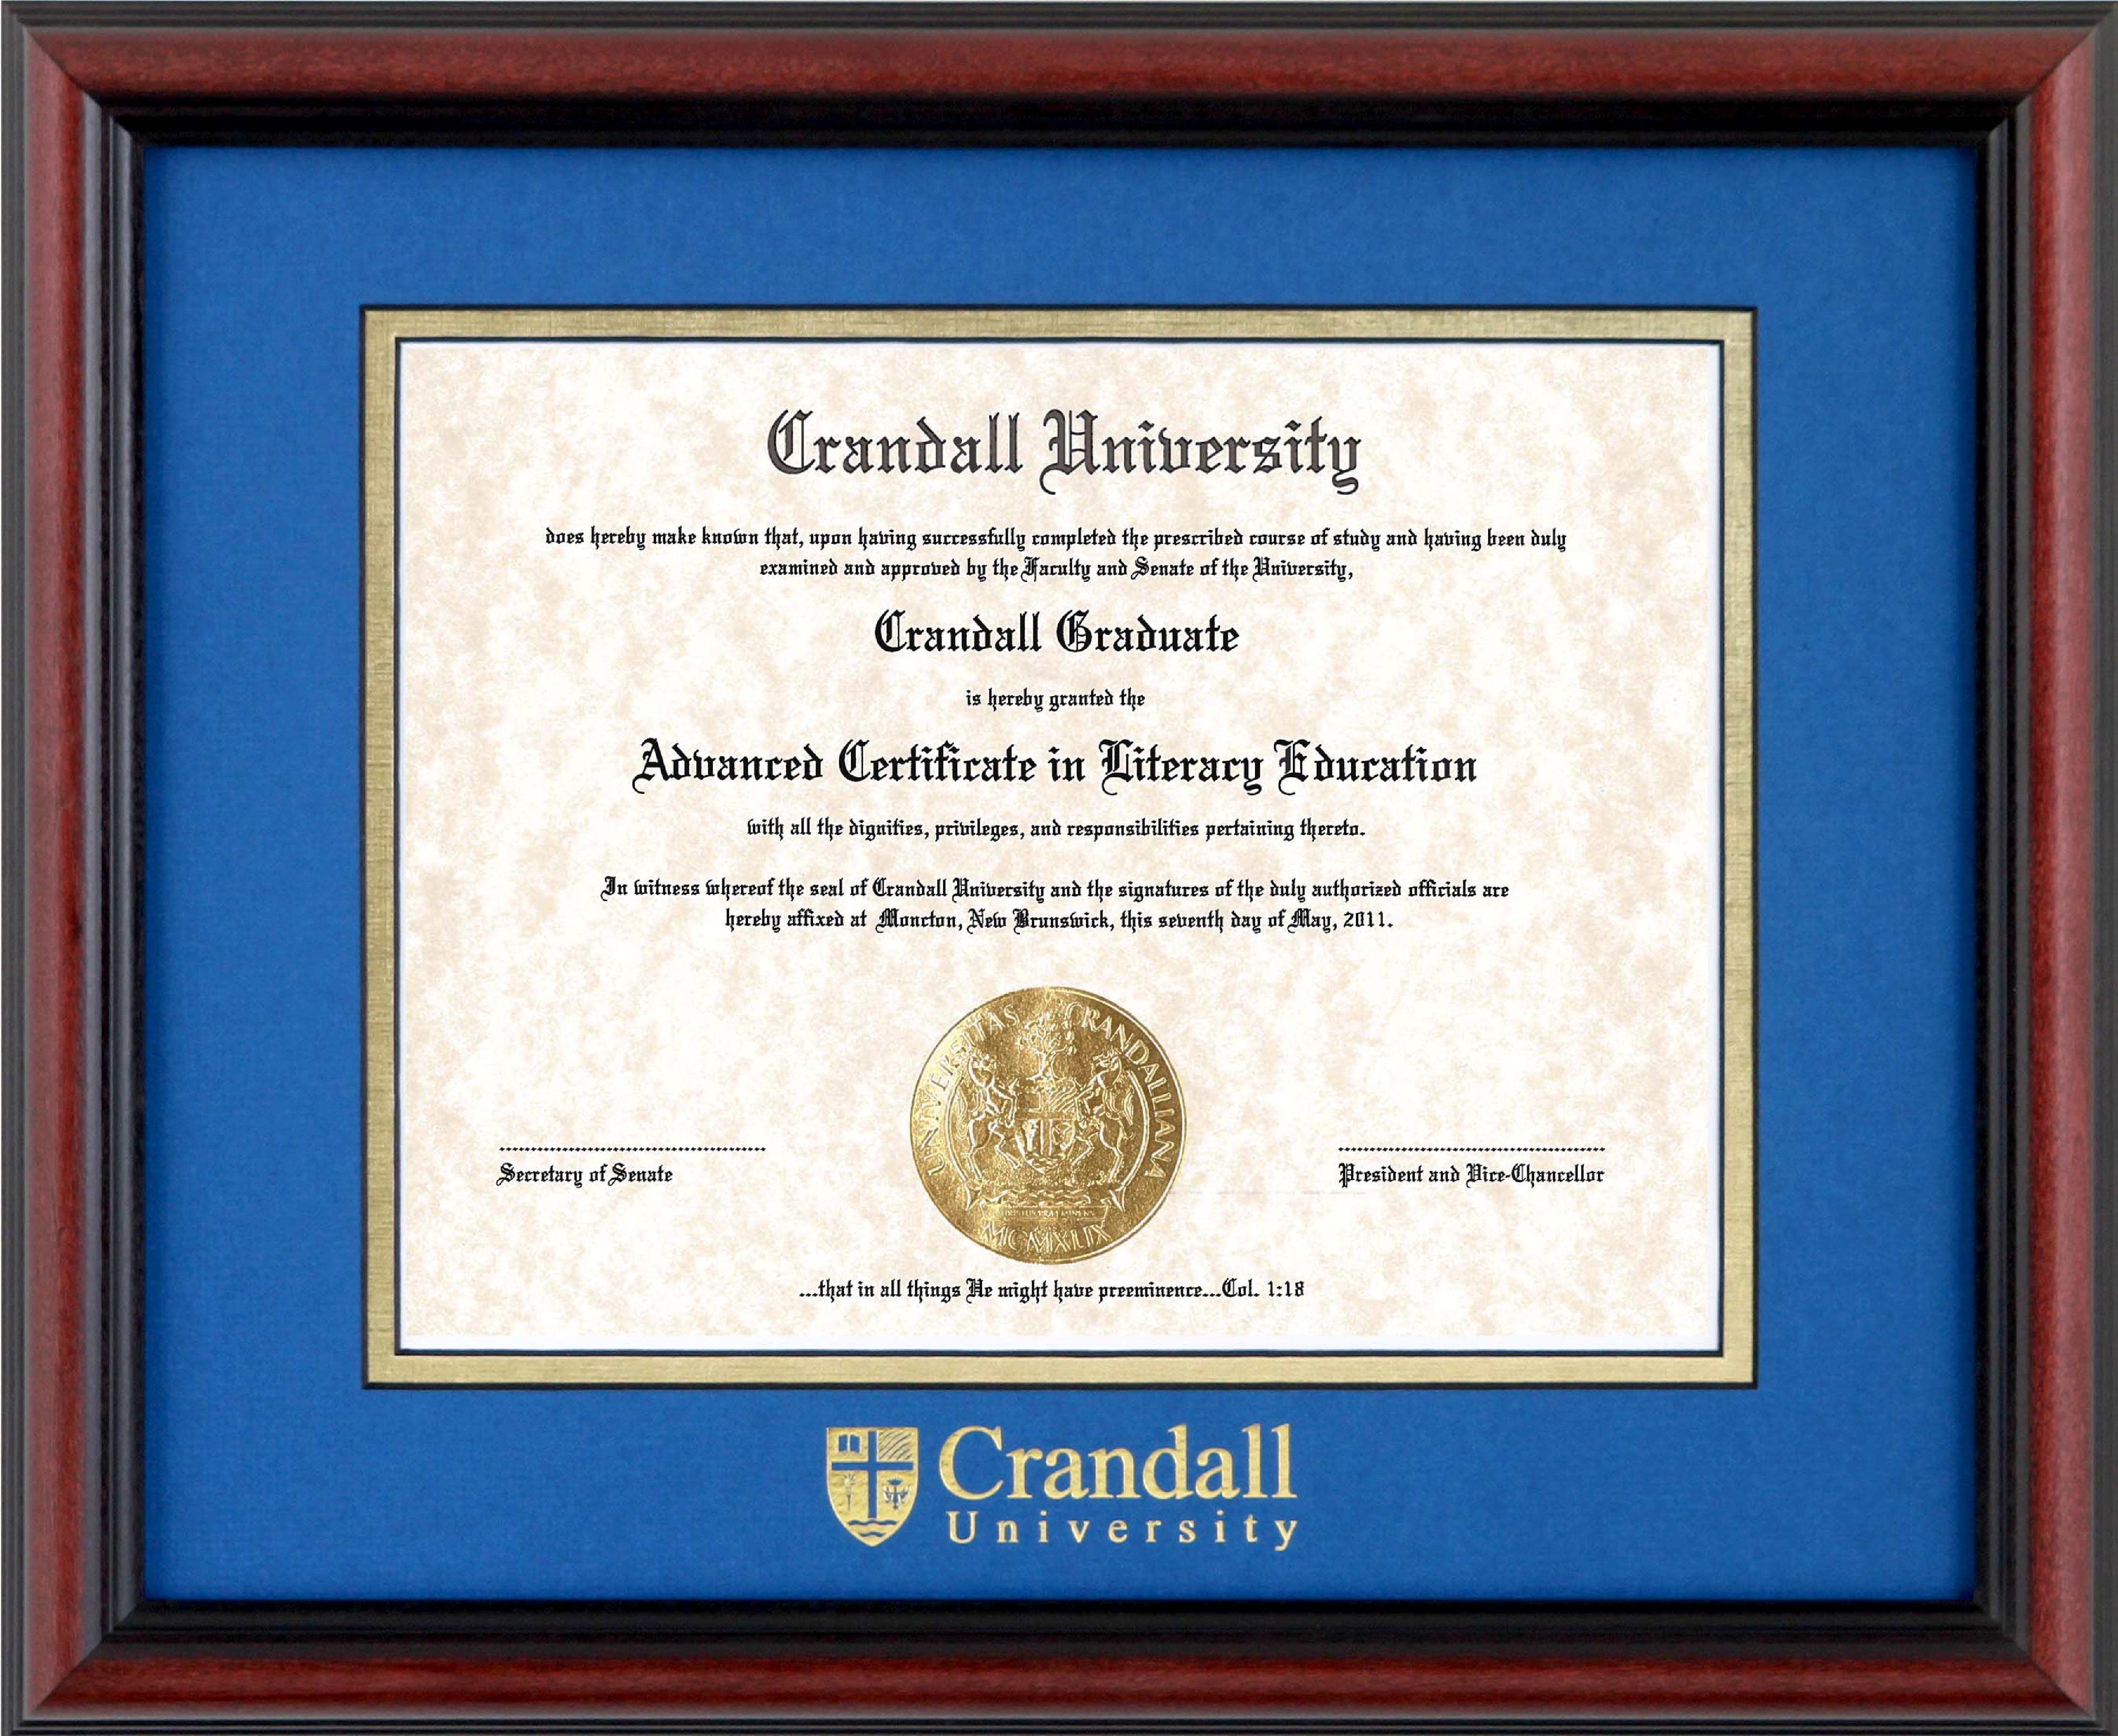 Alumni services crandall university weve partnered with tempo to bring you frames that are made in canada eco friendly and fair labour compliant frames are available for purchase in the solutioingenieria Image collections